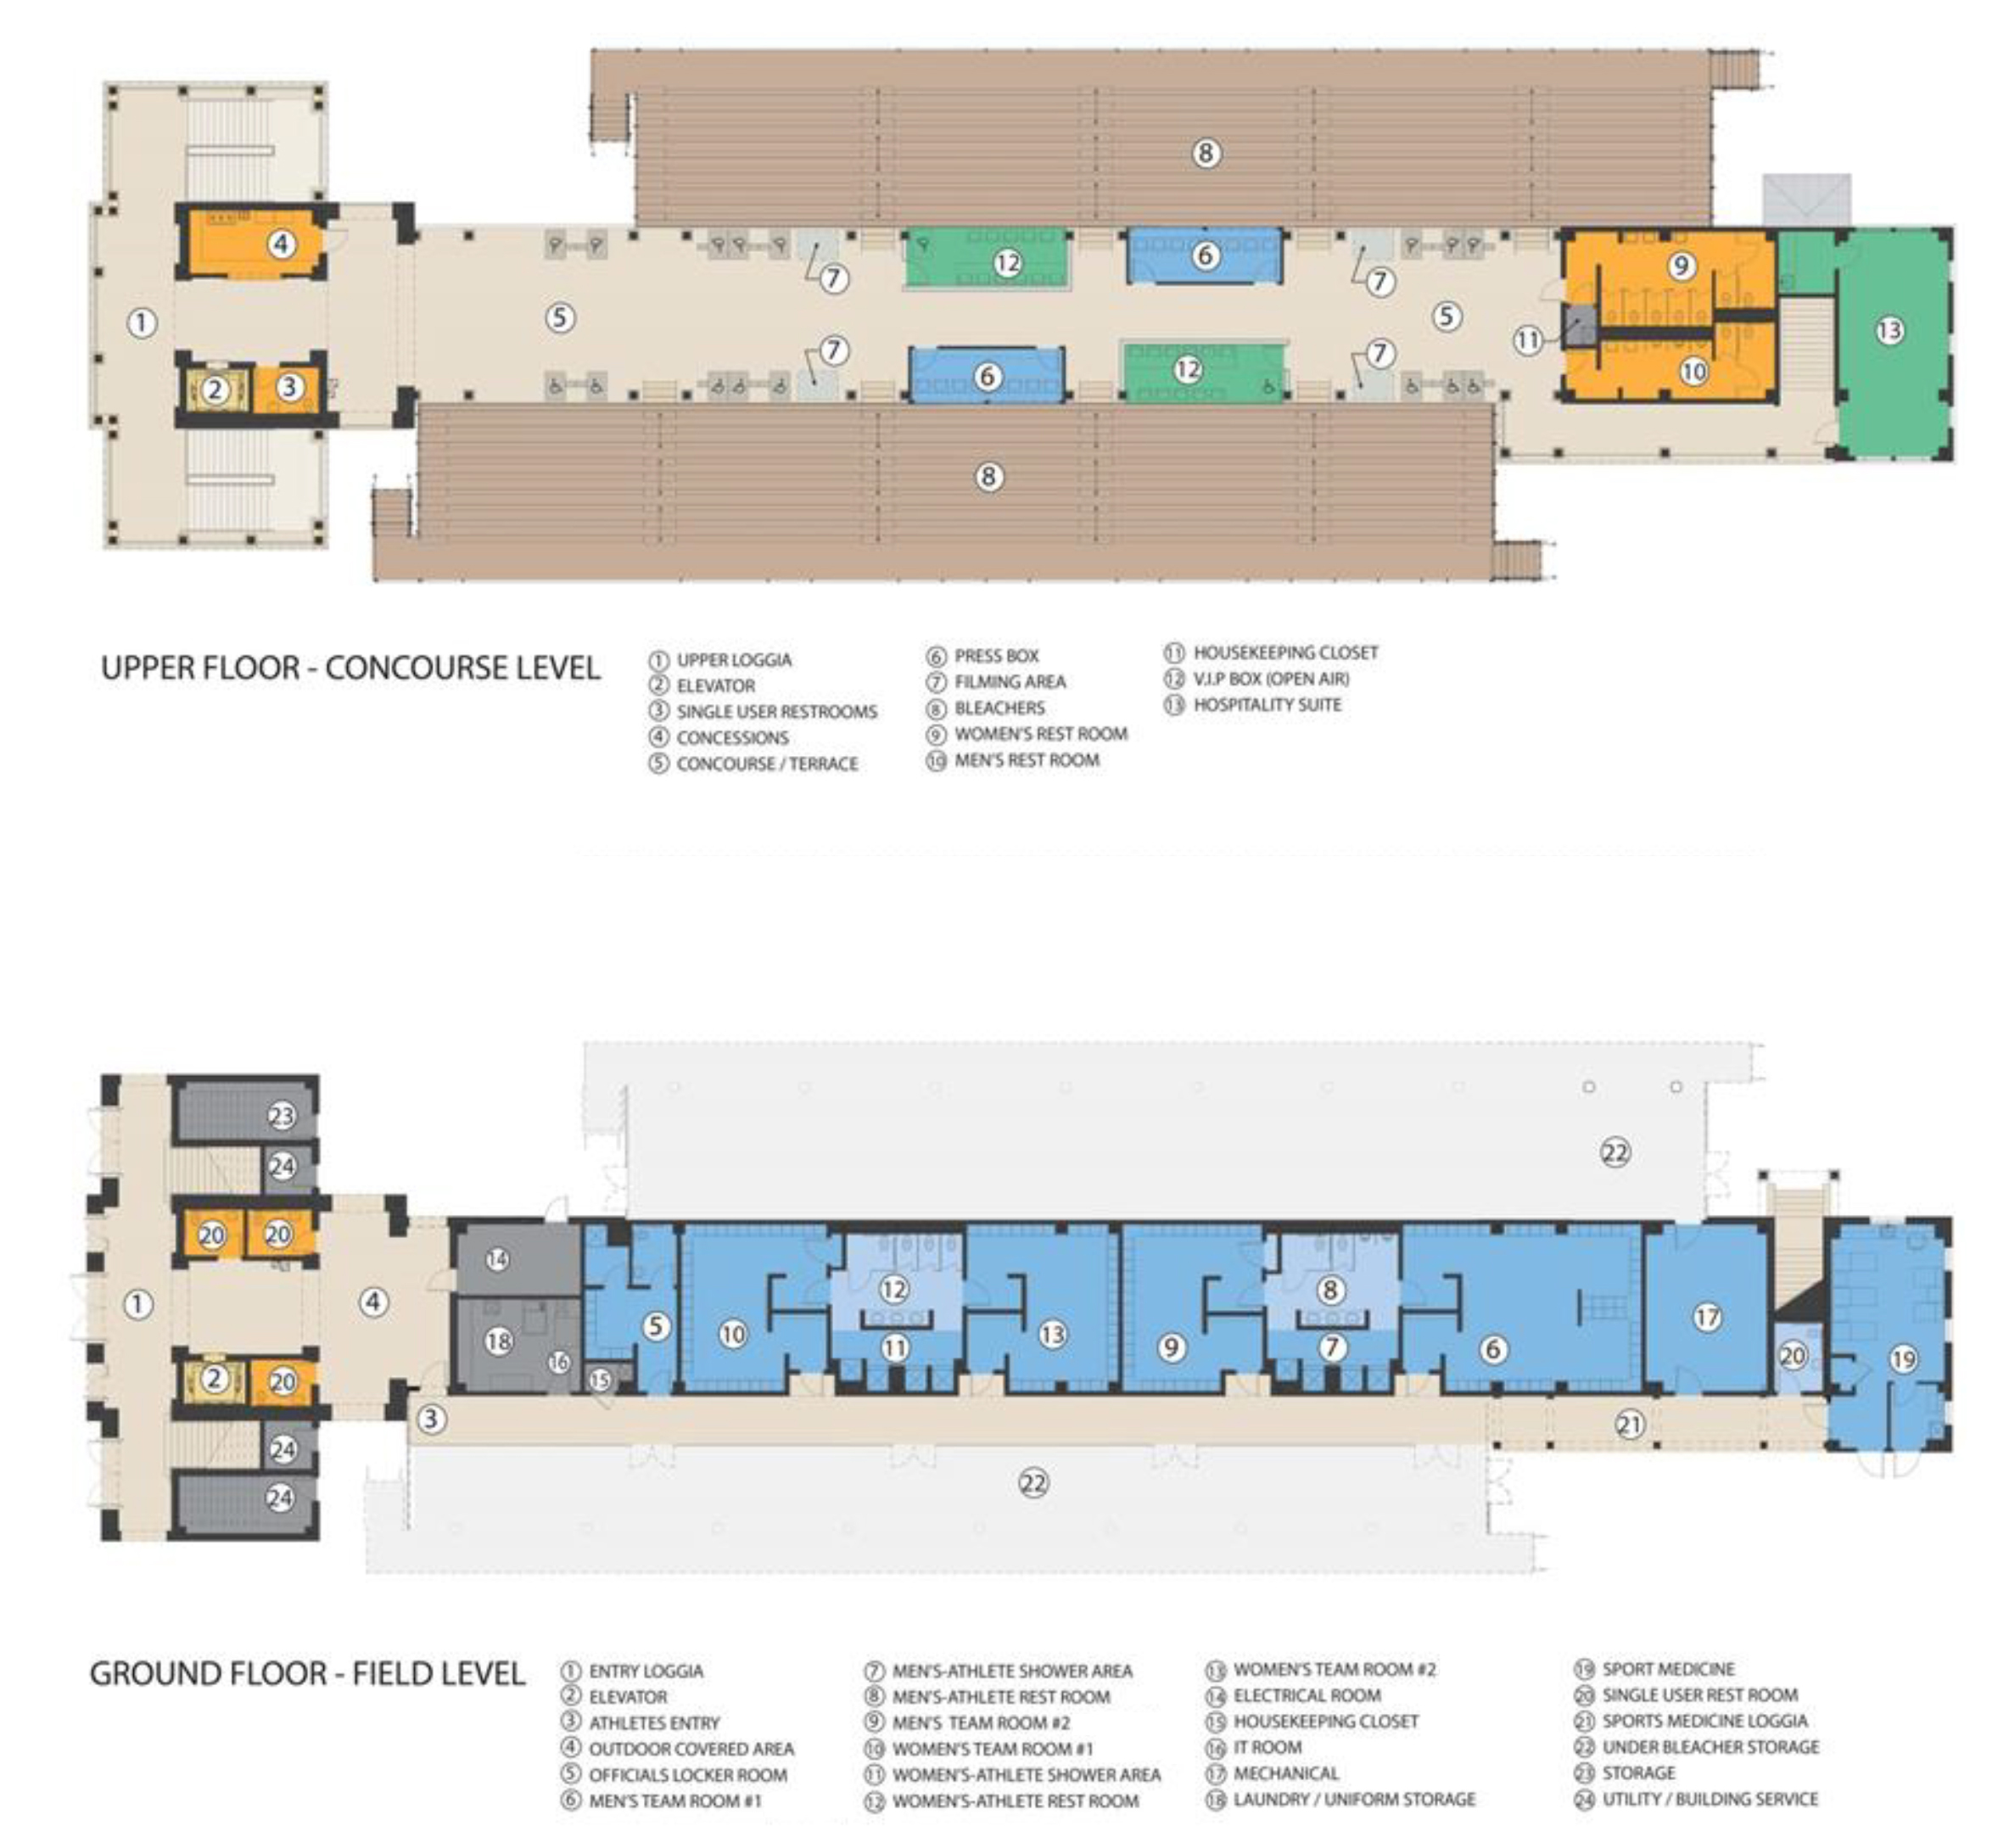 The Upper Floor Concourse Level and Ground Floor Field Level floor plans of the Jamie L Roberts Stadium